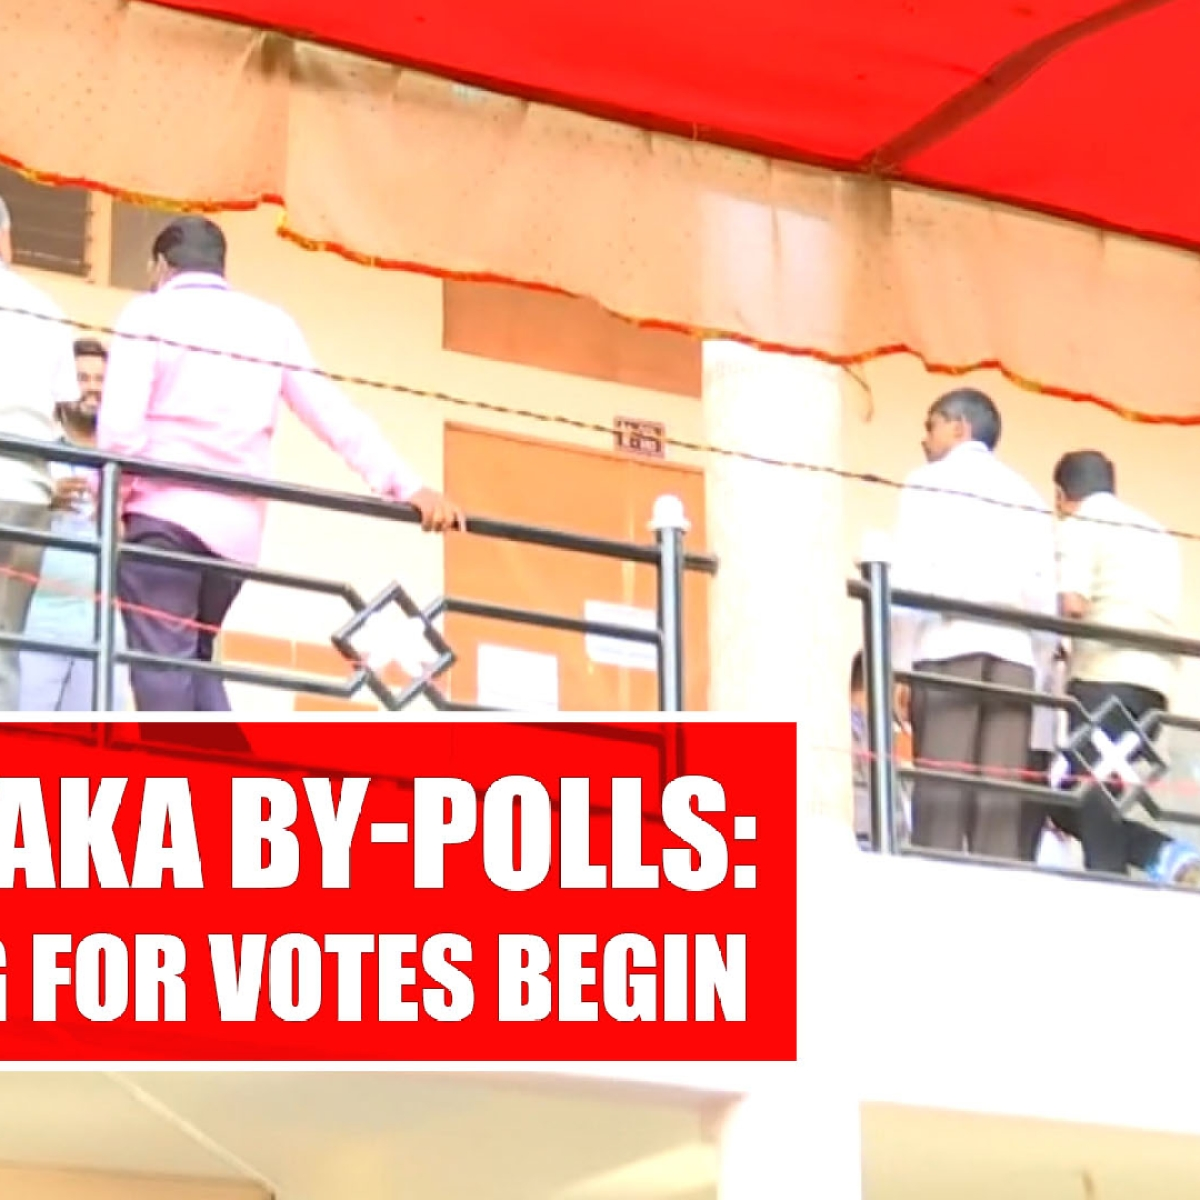 Karnataka by-polls: Counting for votes begin